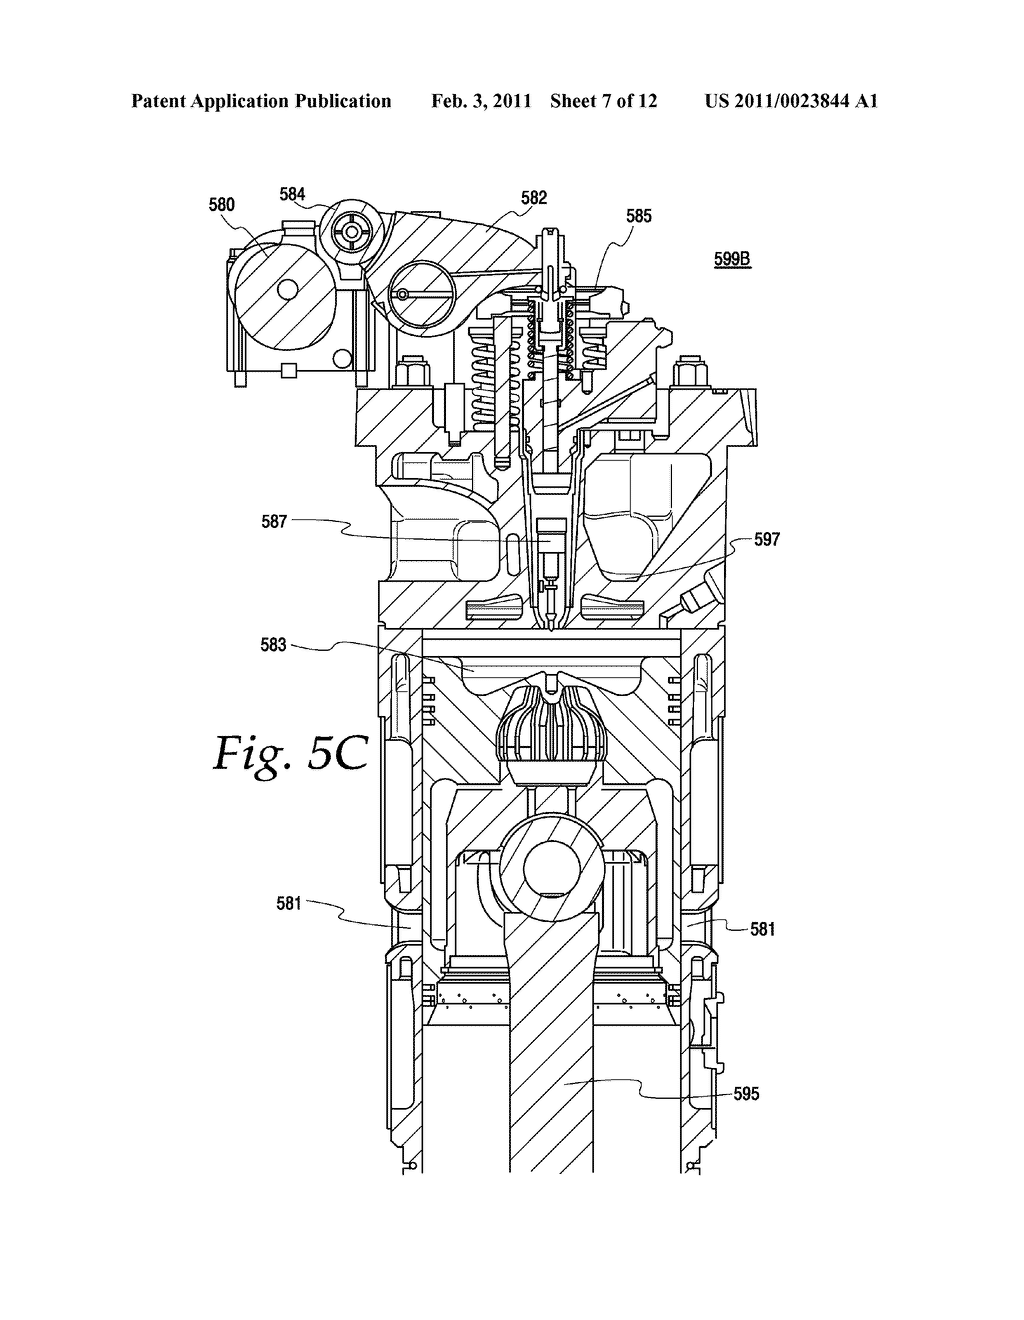 Two Stroke Diesel Engine Diagram Wiring Library Train Exhaust Valve Timing And Lift System For A Locomotive Having